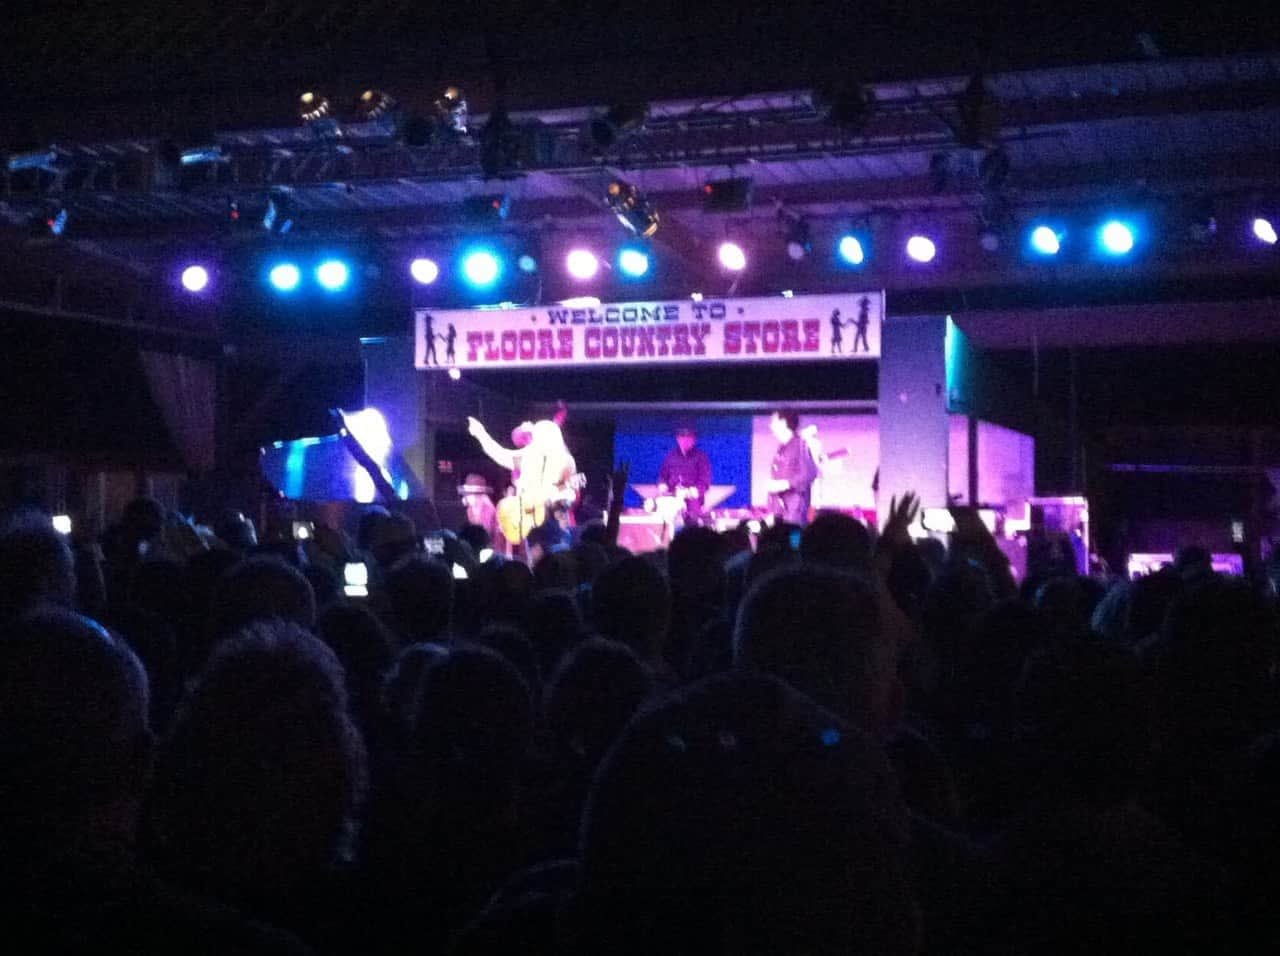 outdoor scene of floores country store during a night concert